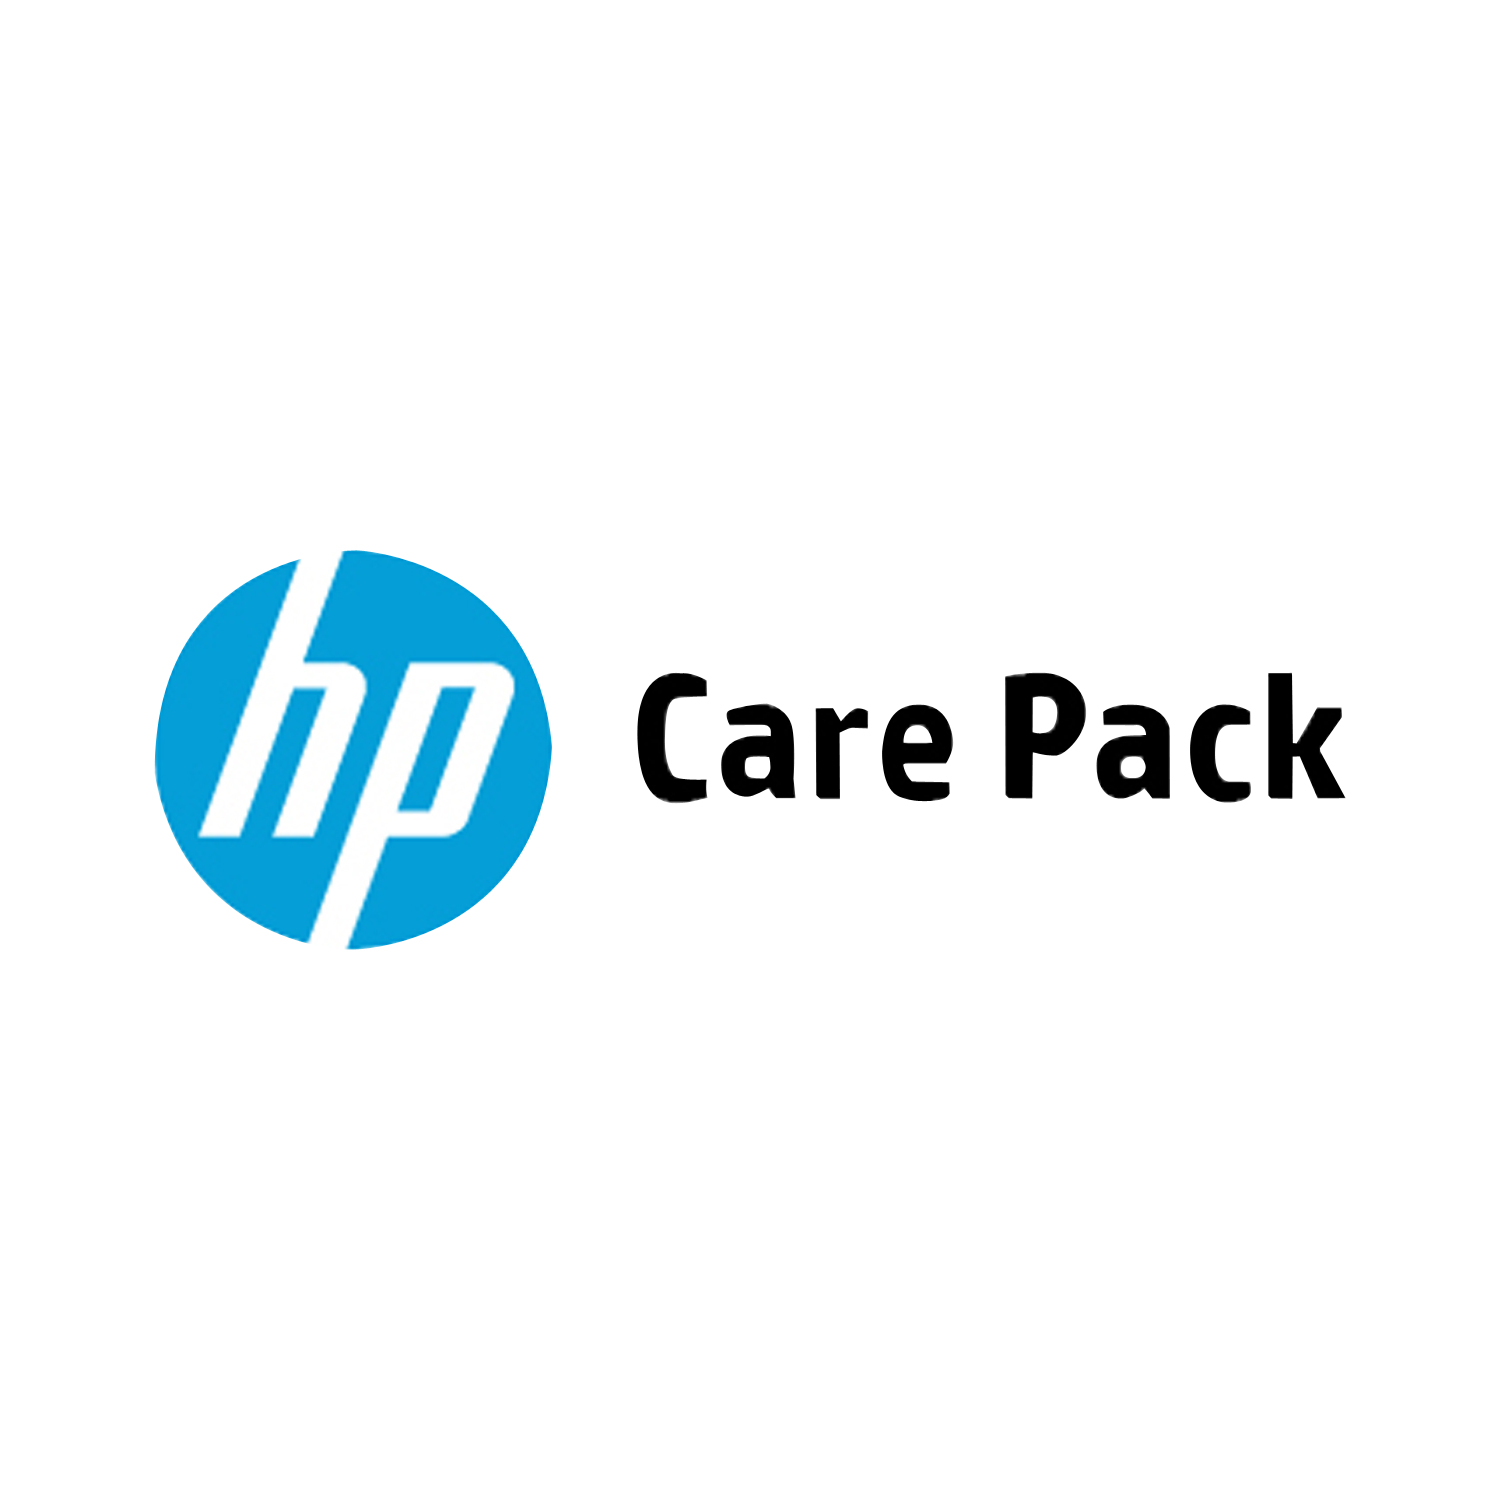 HP 1y PW Pickup Return Notebook Only SVC,Commercial SMB Notebook,1y Post Wrrnty Pickup Return SVC.CPU Only,HP Picks Up,repairs/replaces,returns Unit. Std Bus H,d Excl HP Hol. 3 Days TAT U9BB0 - C2000